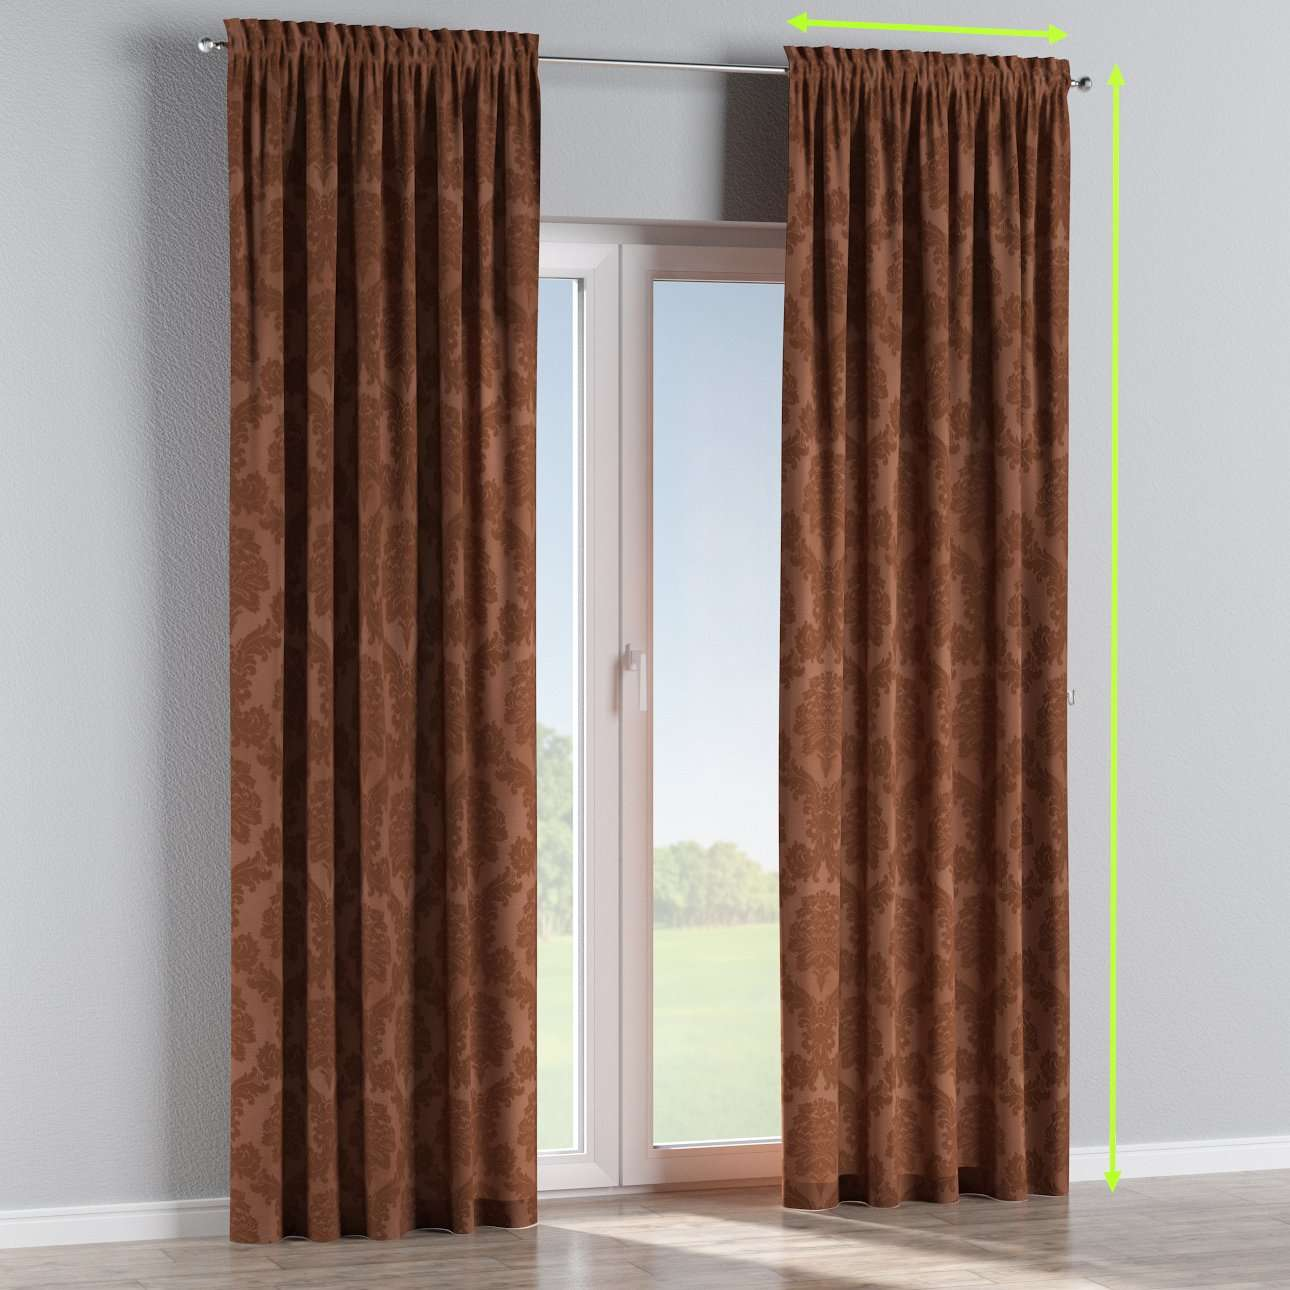 Slot and frill lined curtains in collection Damasco, fabric: 613-88